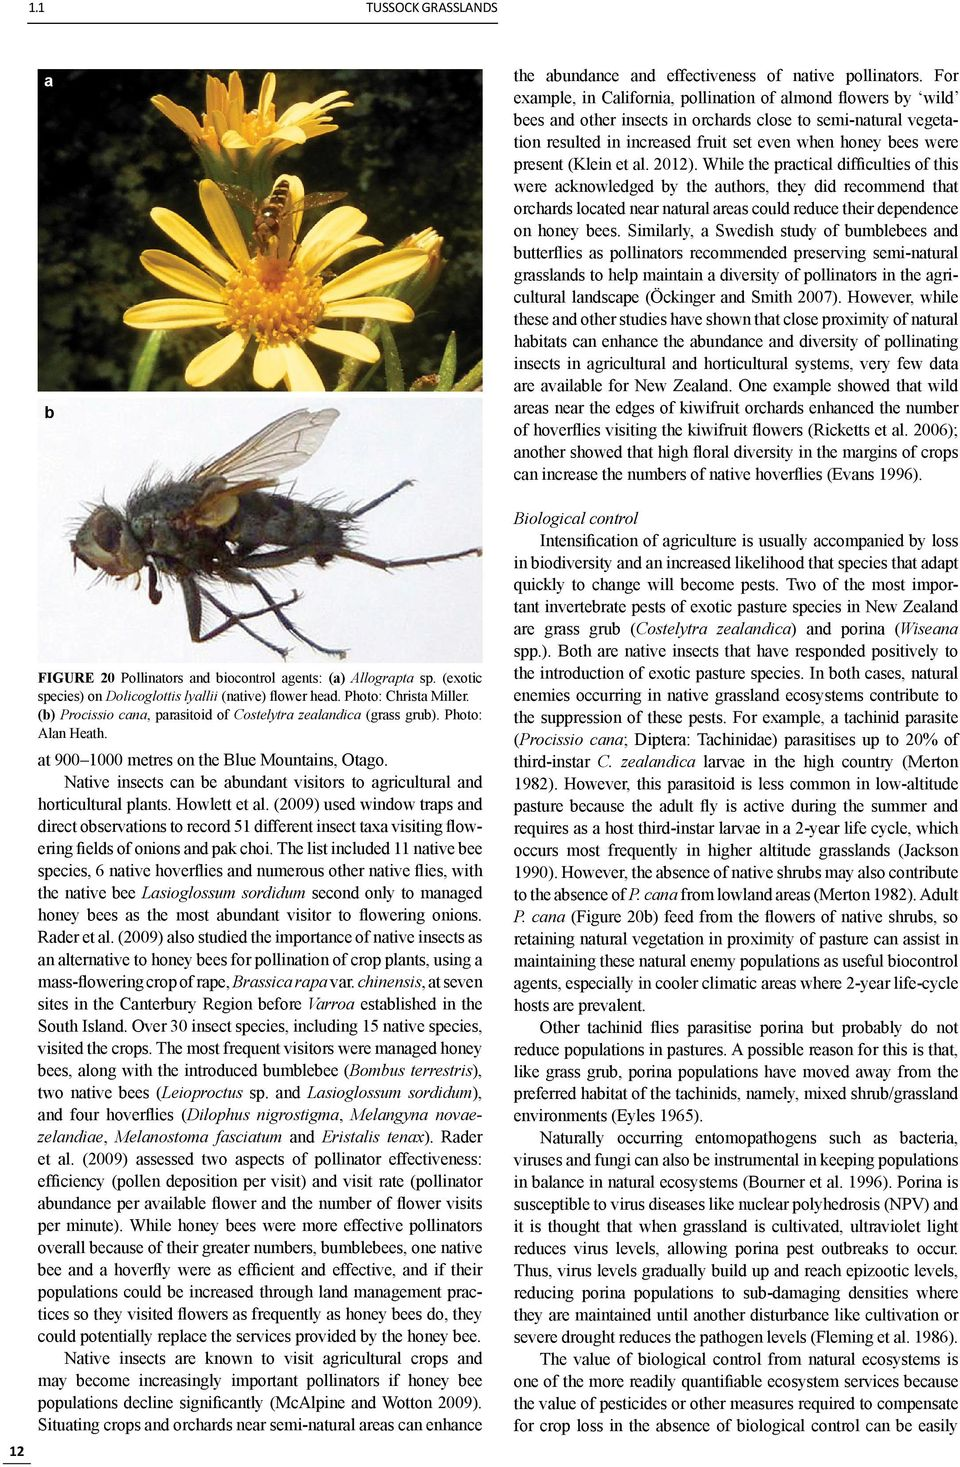 Native insects can be abundant visitors to agricultural and horticultural plants. Howlett et al.